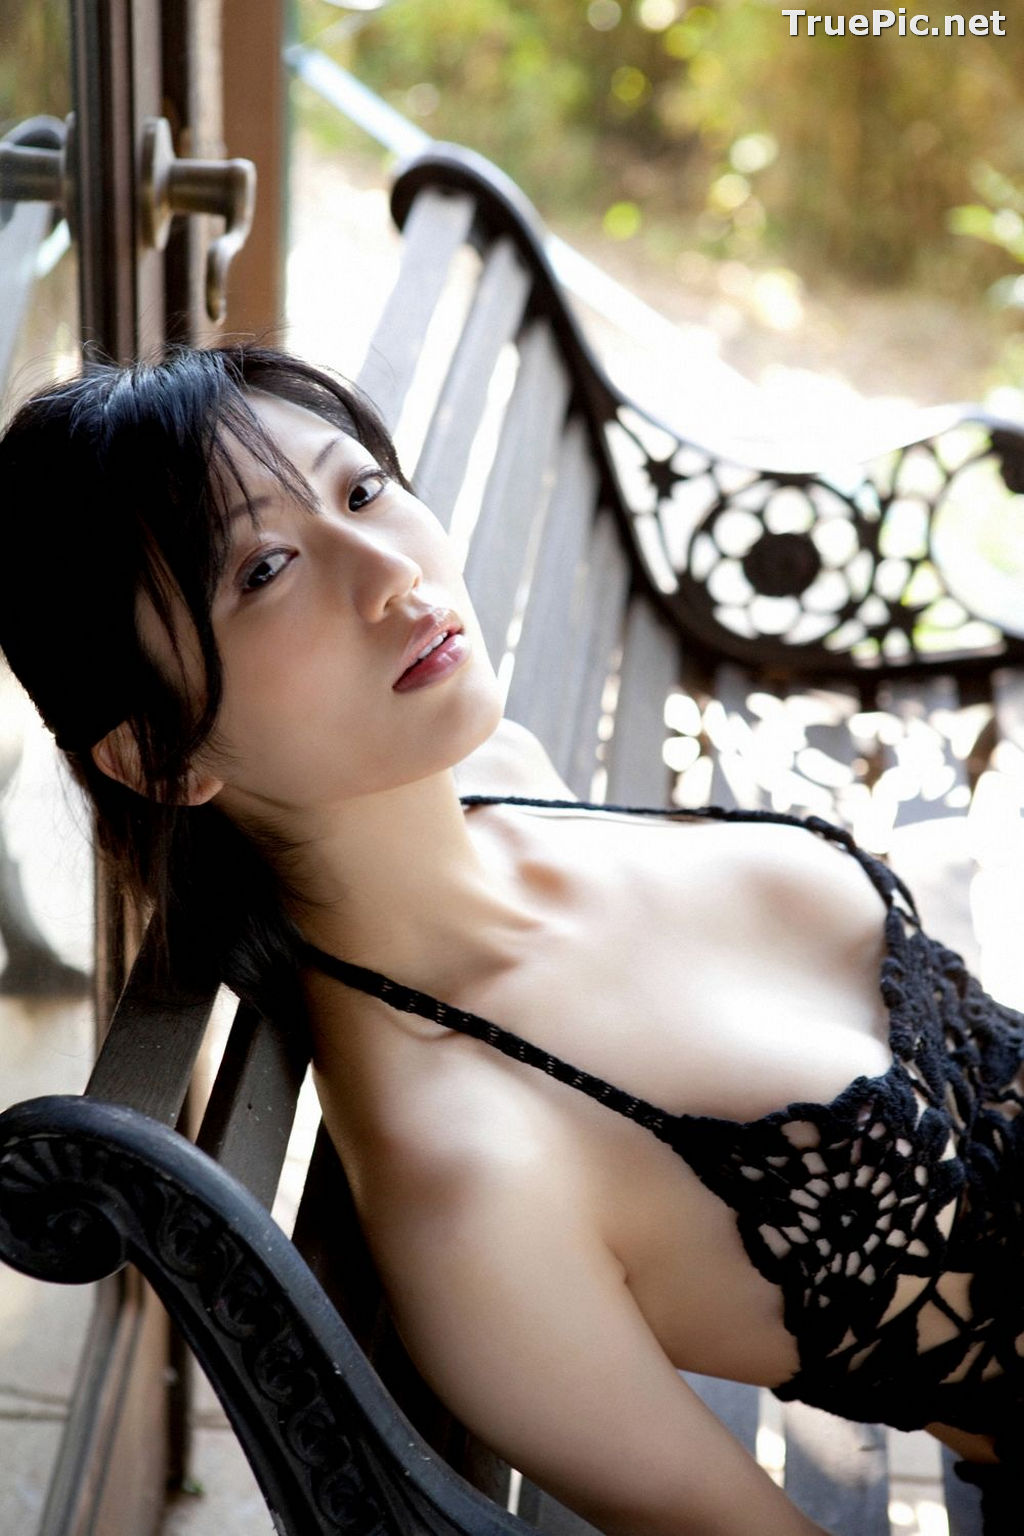 Image [YS Web] Vol.525 - Japanese Actress and Gravure Idol - Mitsu Dan - TruePic.net - Picture-8